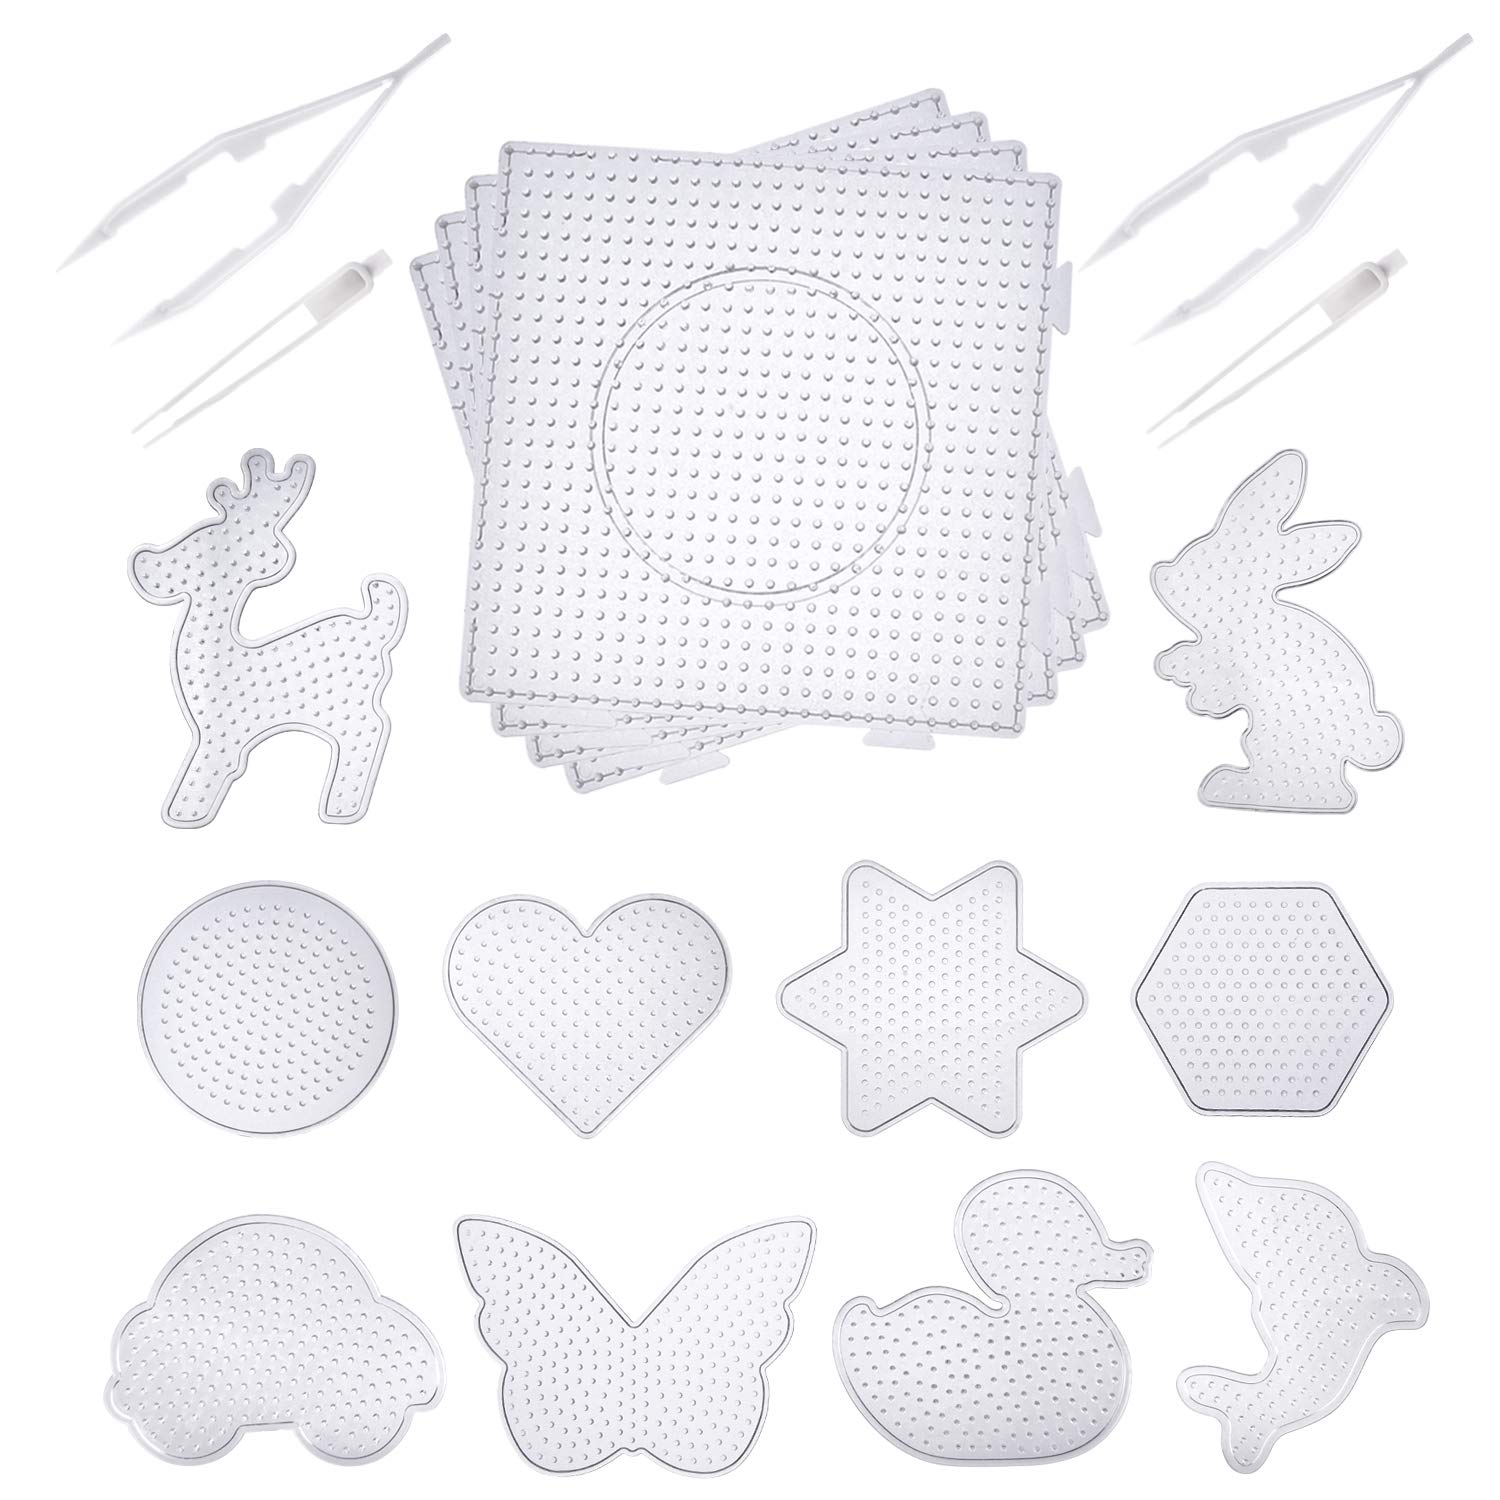 Canomo Fuse Beads Boards 4 Pack 5 mm Large Square Clear Plastic Pegboards 10 Pieces 5 mm Small Cute Fuse Beads Pegboards with 4 Pieces Fuse Bead Tweezers by canomo